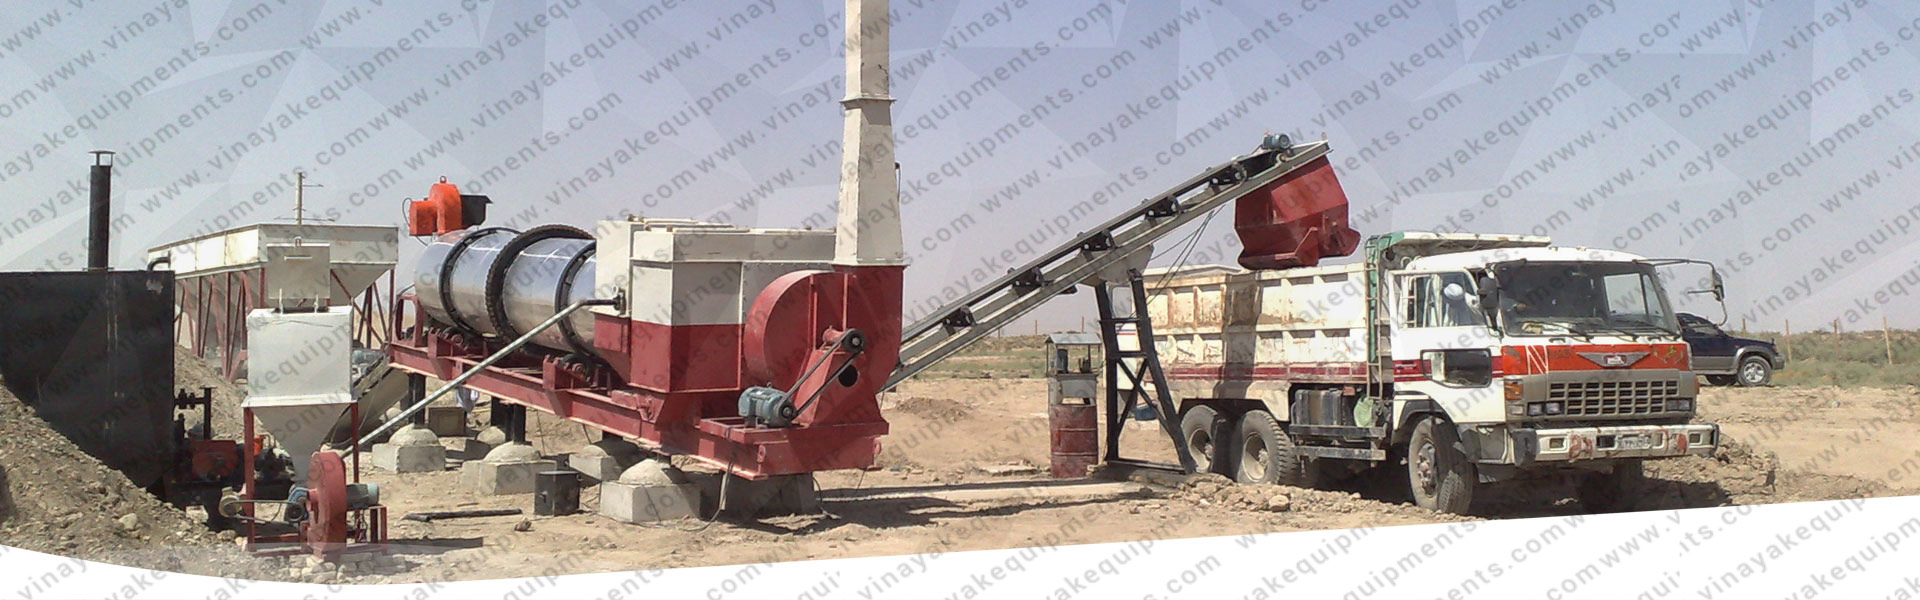 Mobile asphalt plant manufacturers in germany, turkey, sri lanka, south africa, uk, marini, australia